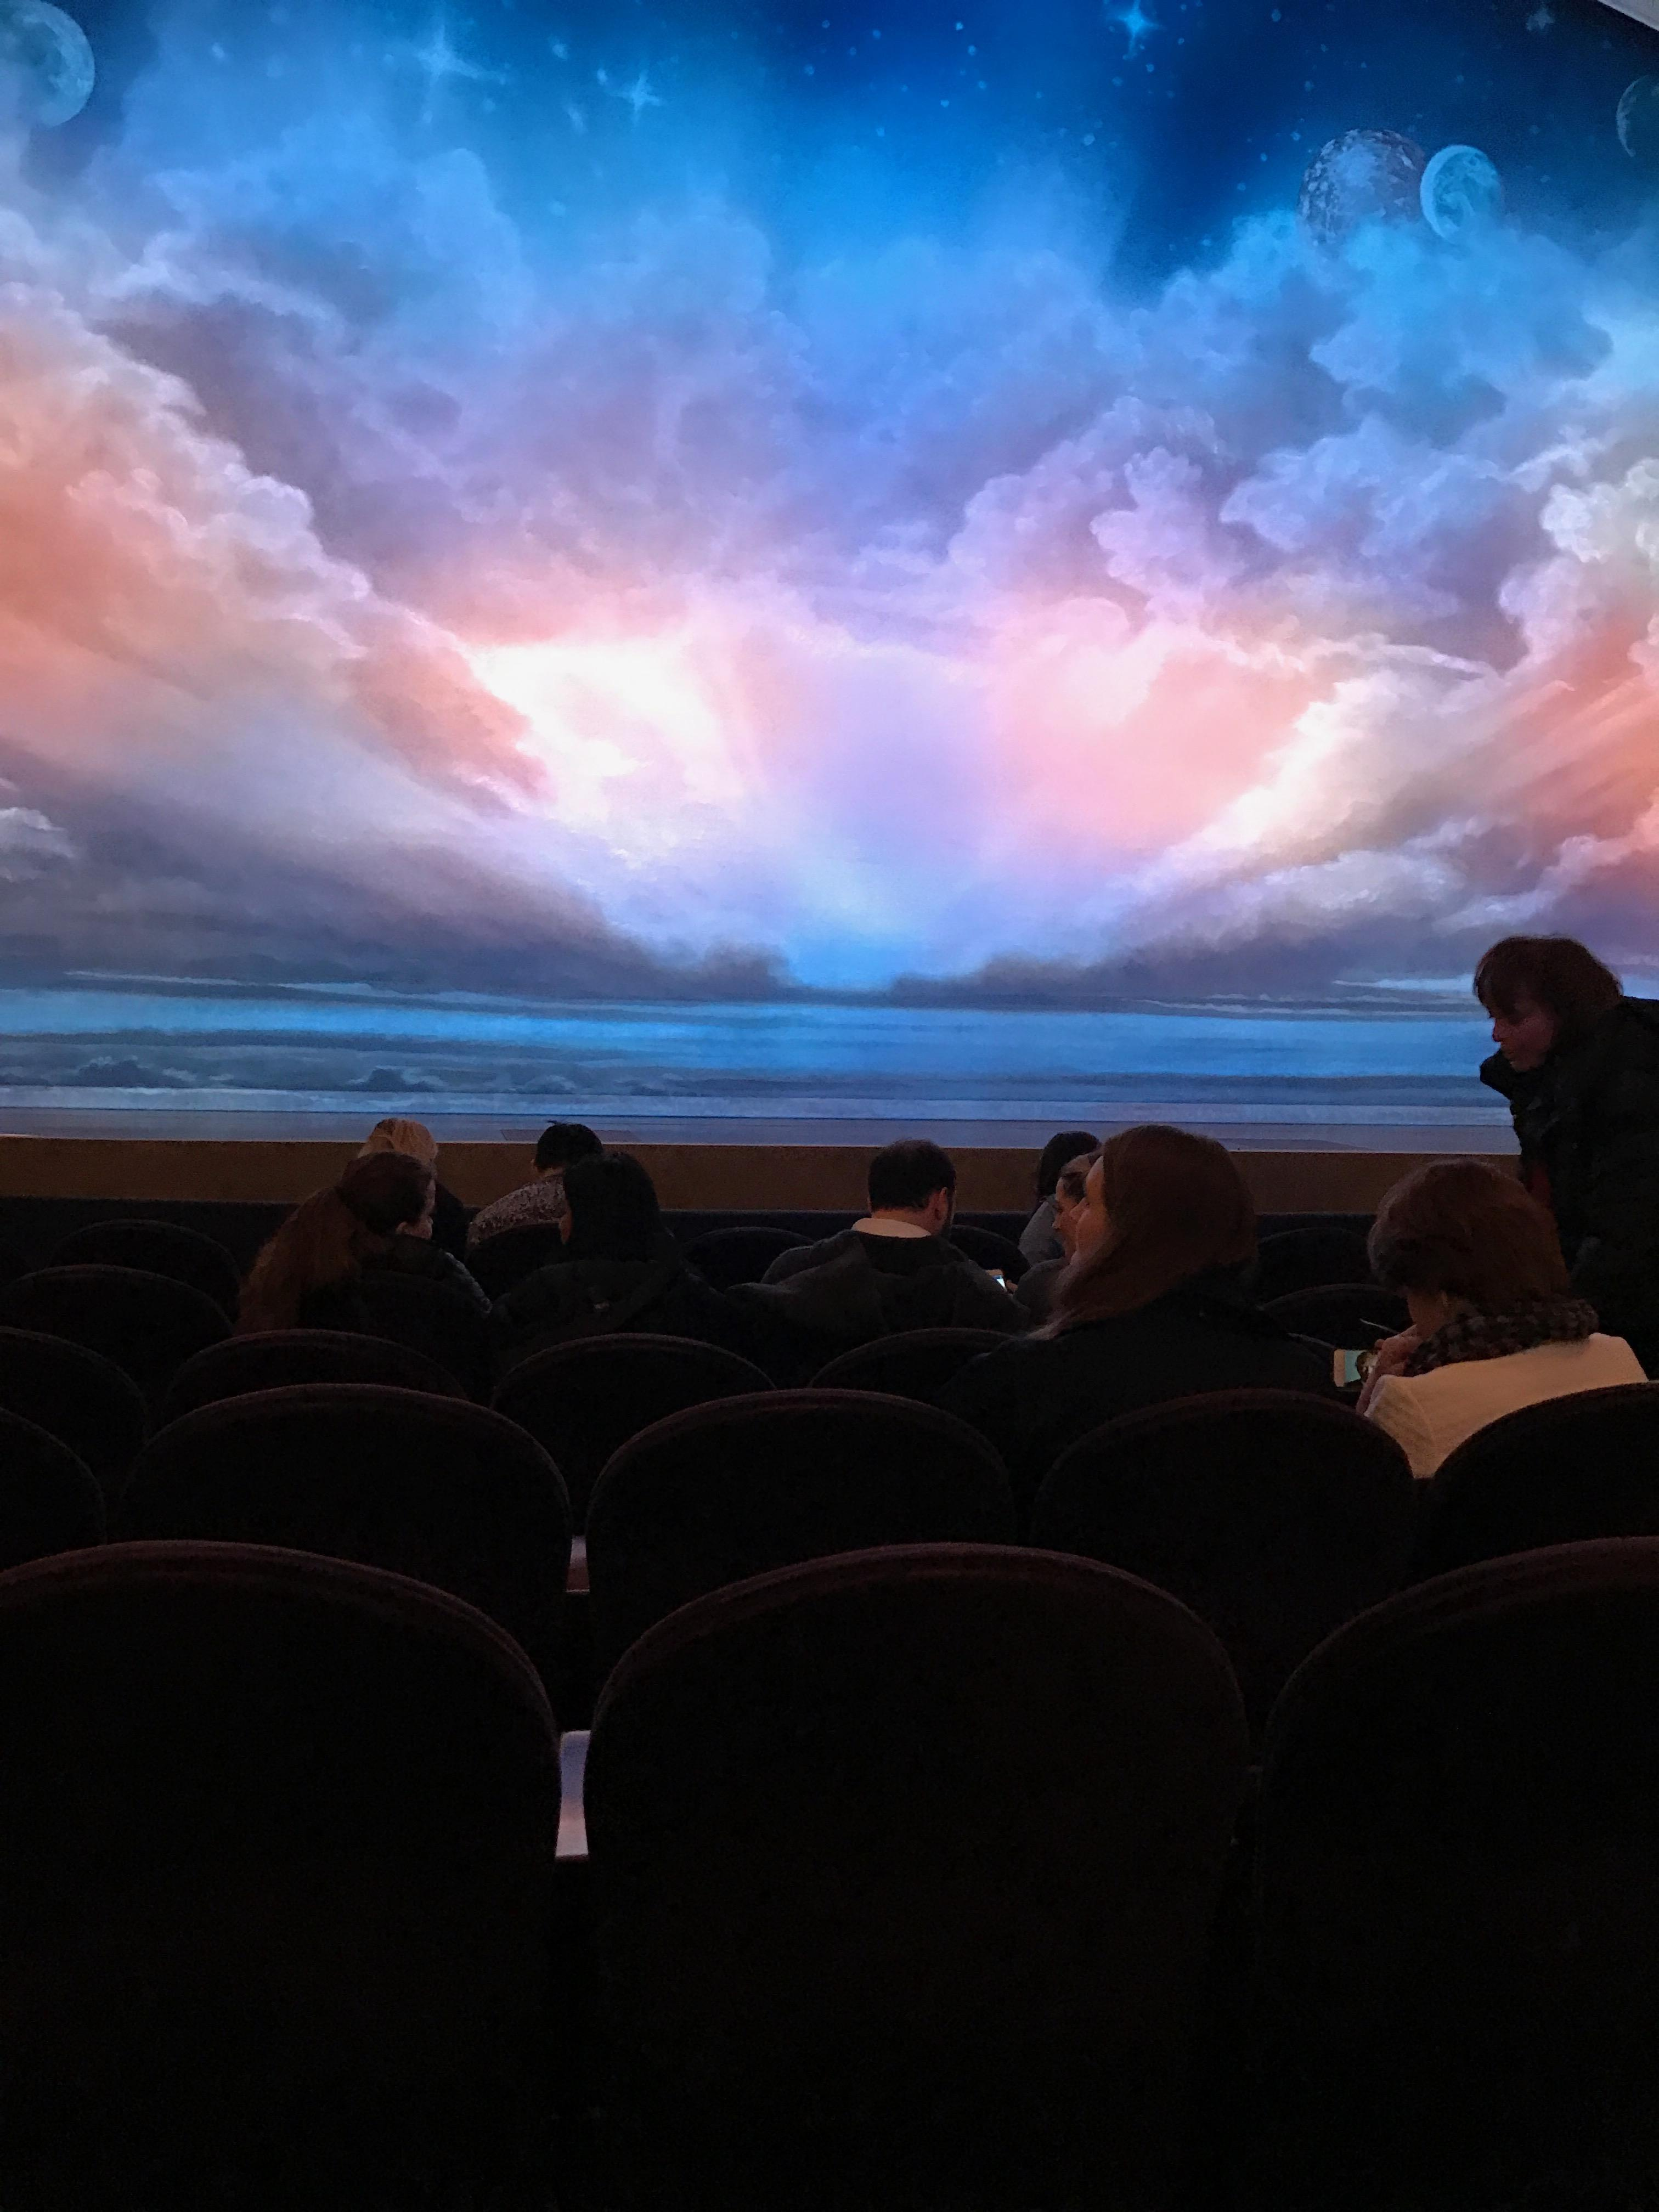 Eugene O'Neill Theatre Section Orchestra Row G Seat 112